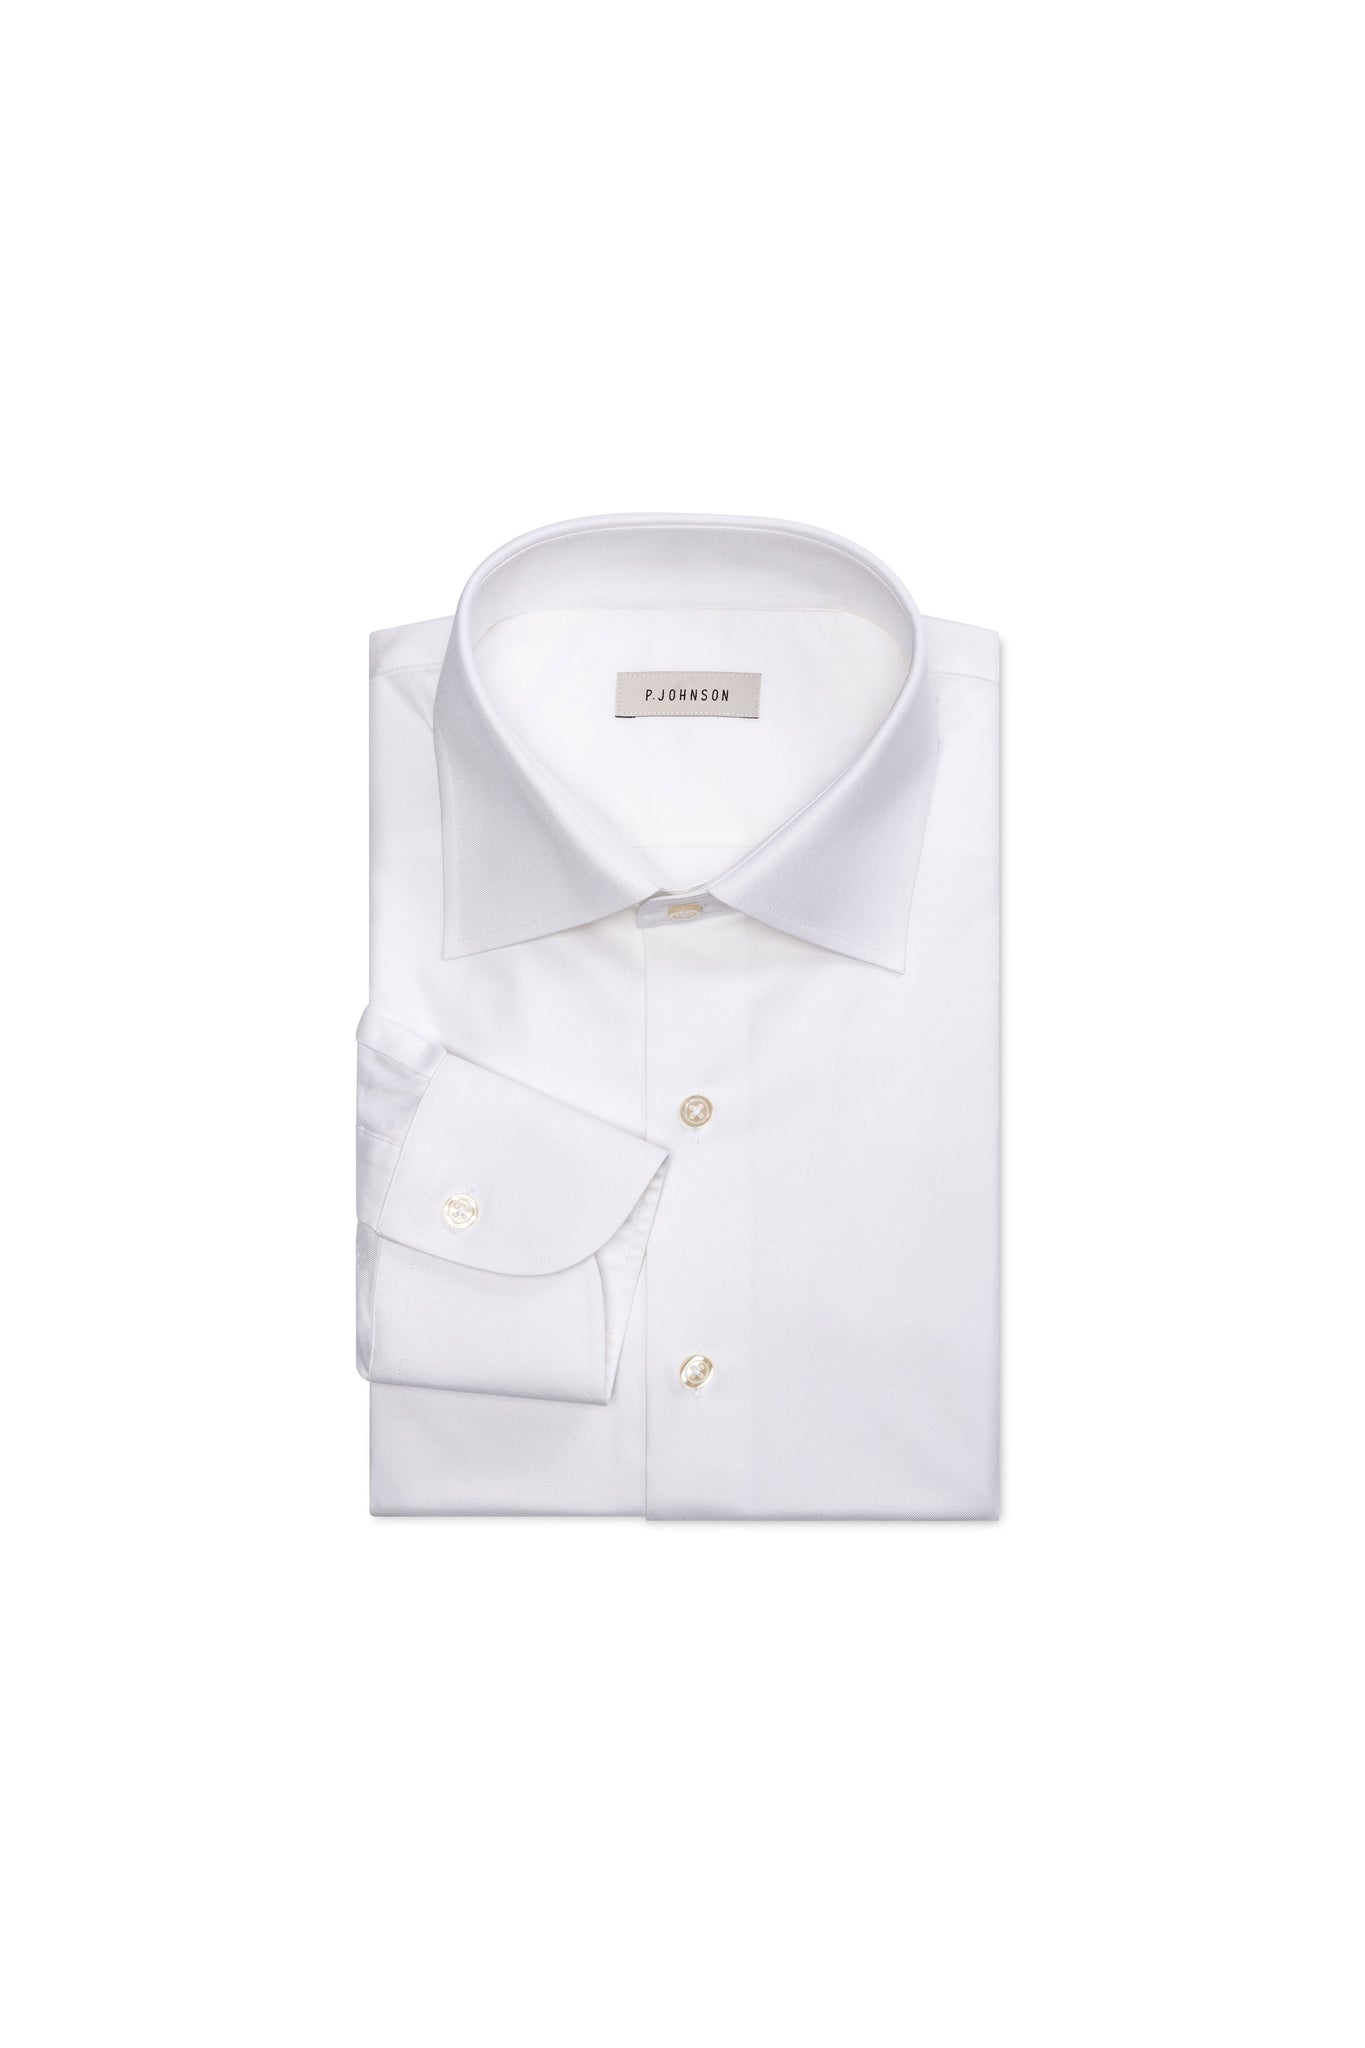 The Perfect White Shirt